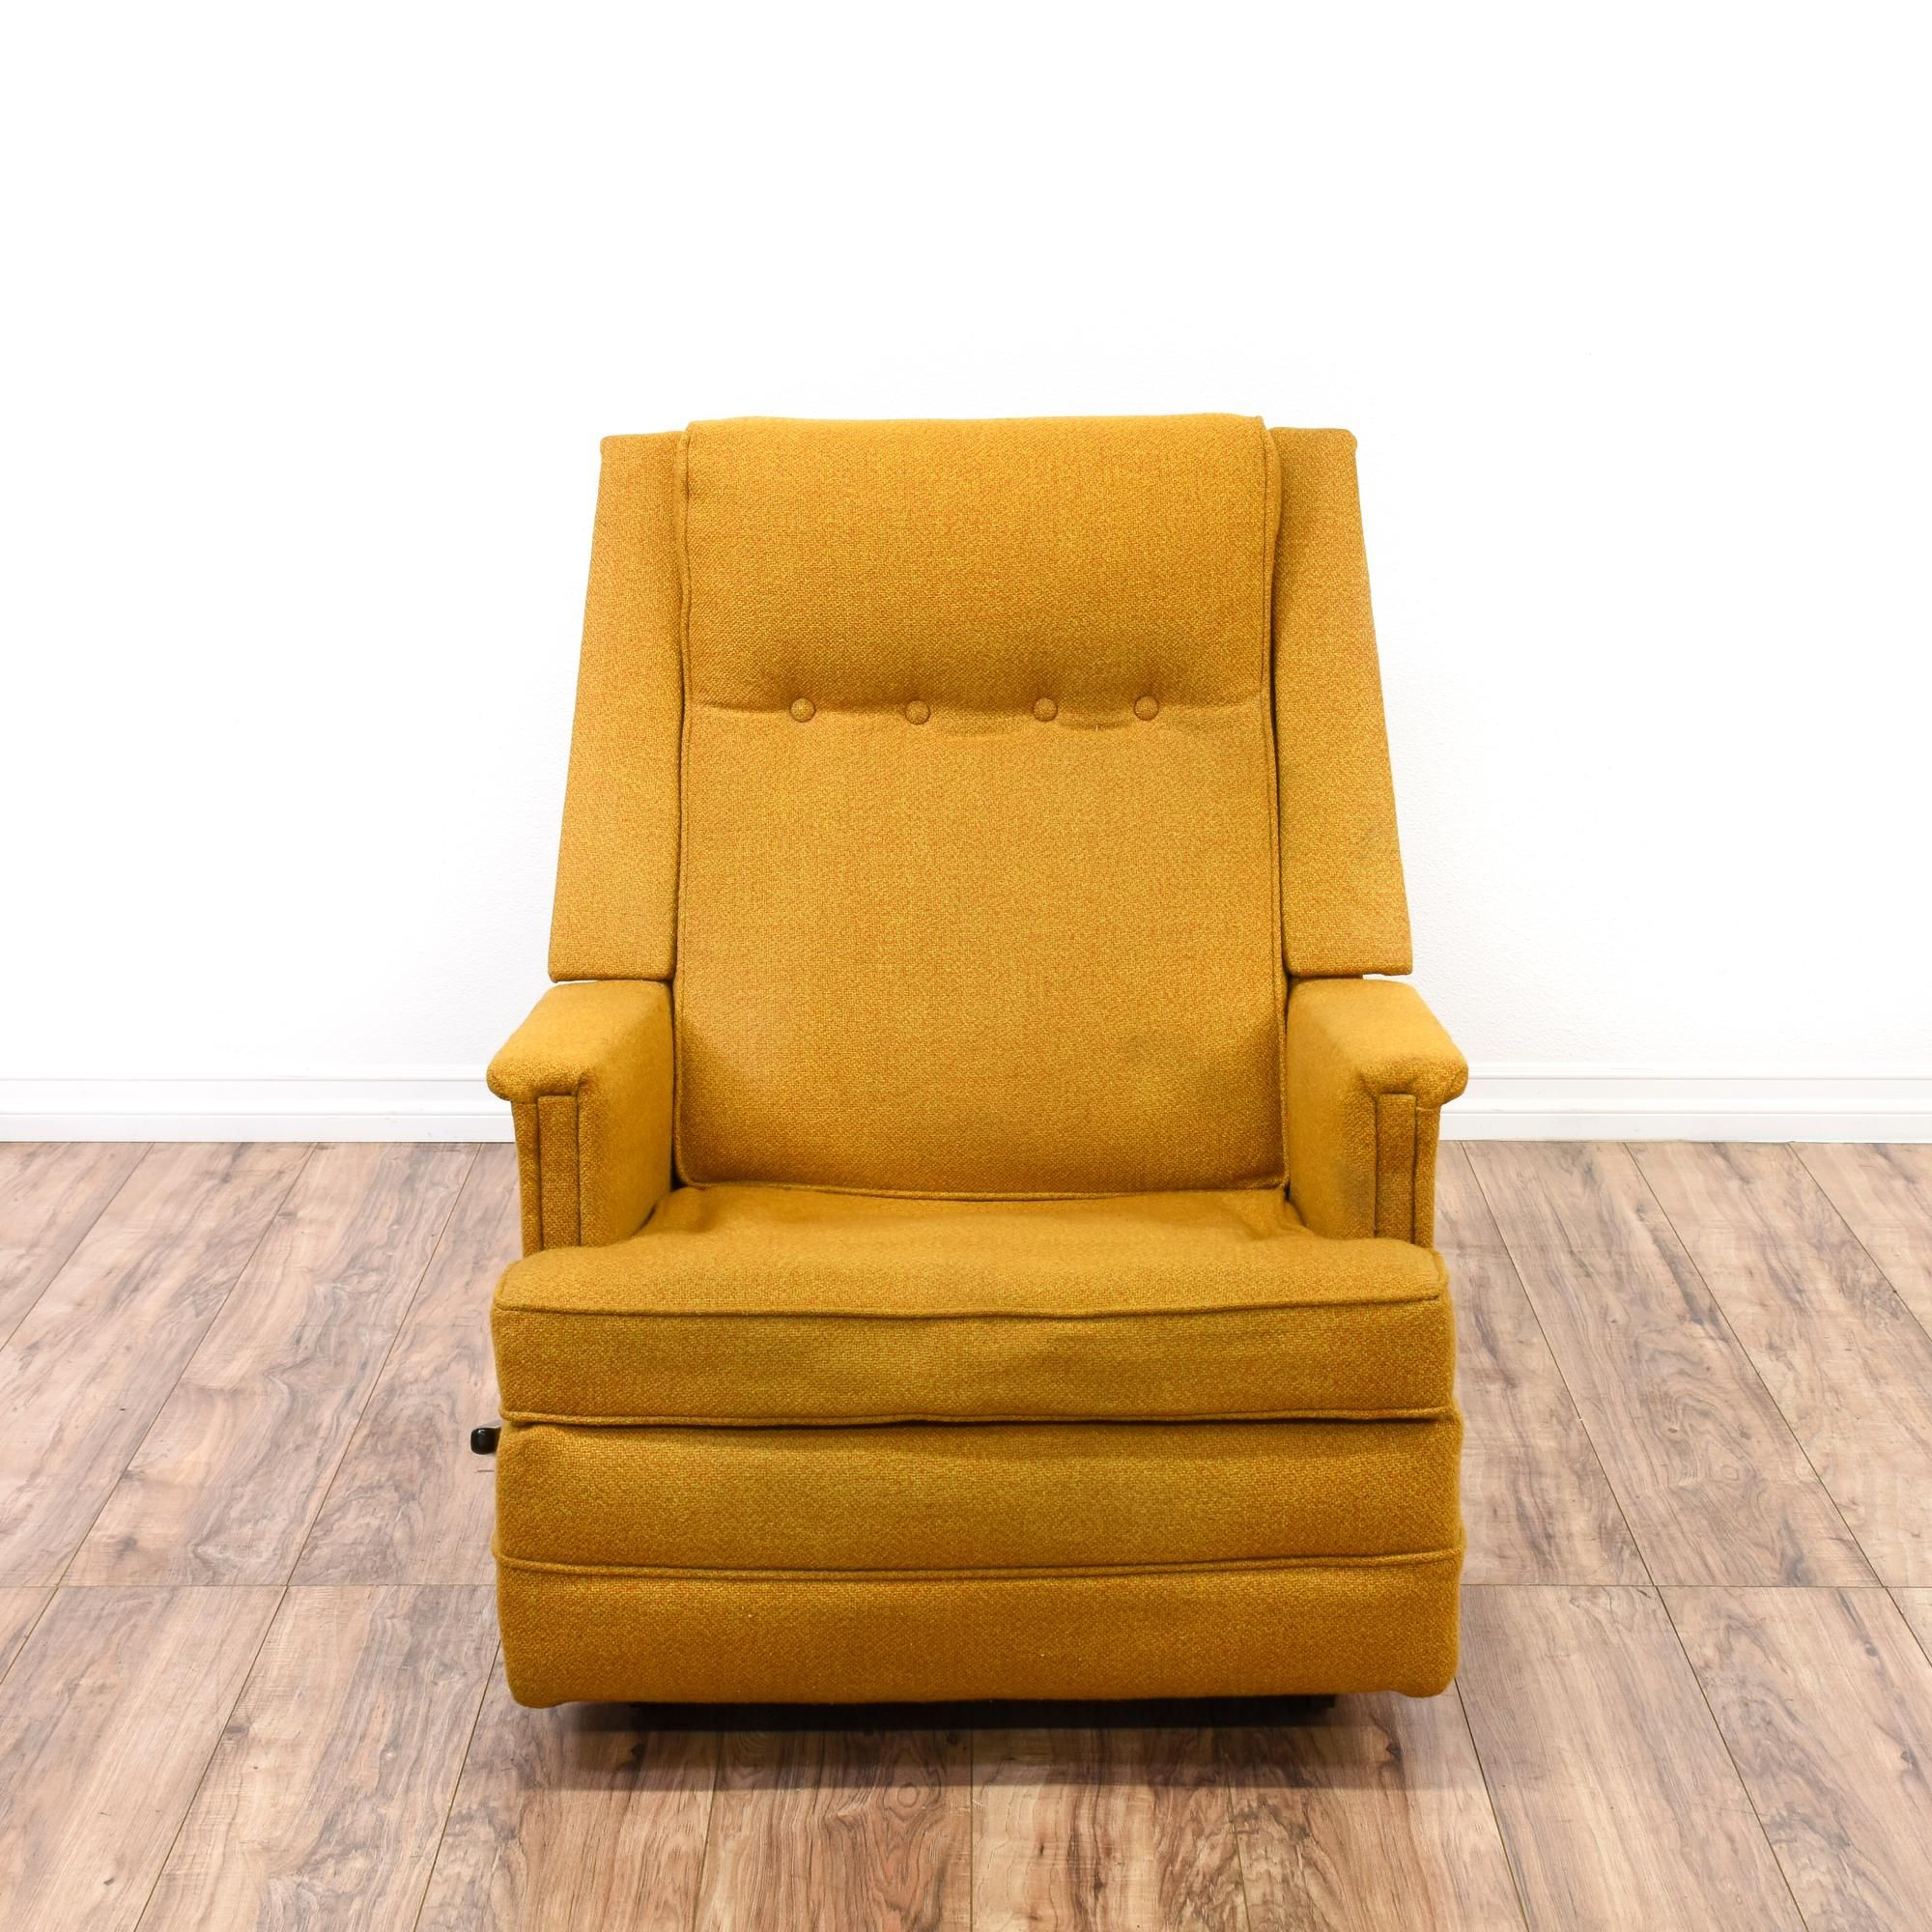 This rocking recliner chair is upholstered in a soft mustard fabric. This mid century modern style armchair has a button tufted back comfortable seat ...  sc 1 st  Pinterest : modern style recliner chairs - islam-shia.org